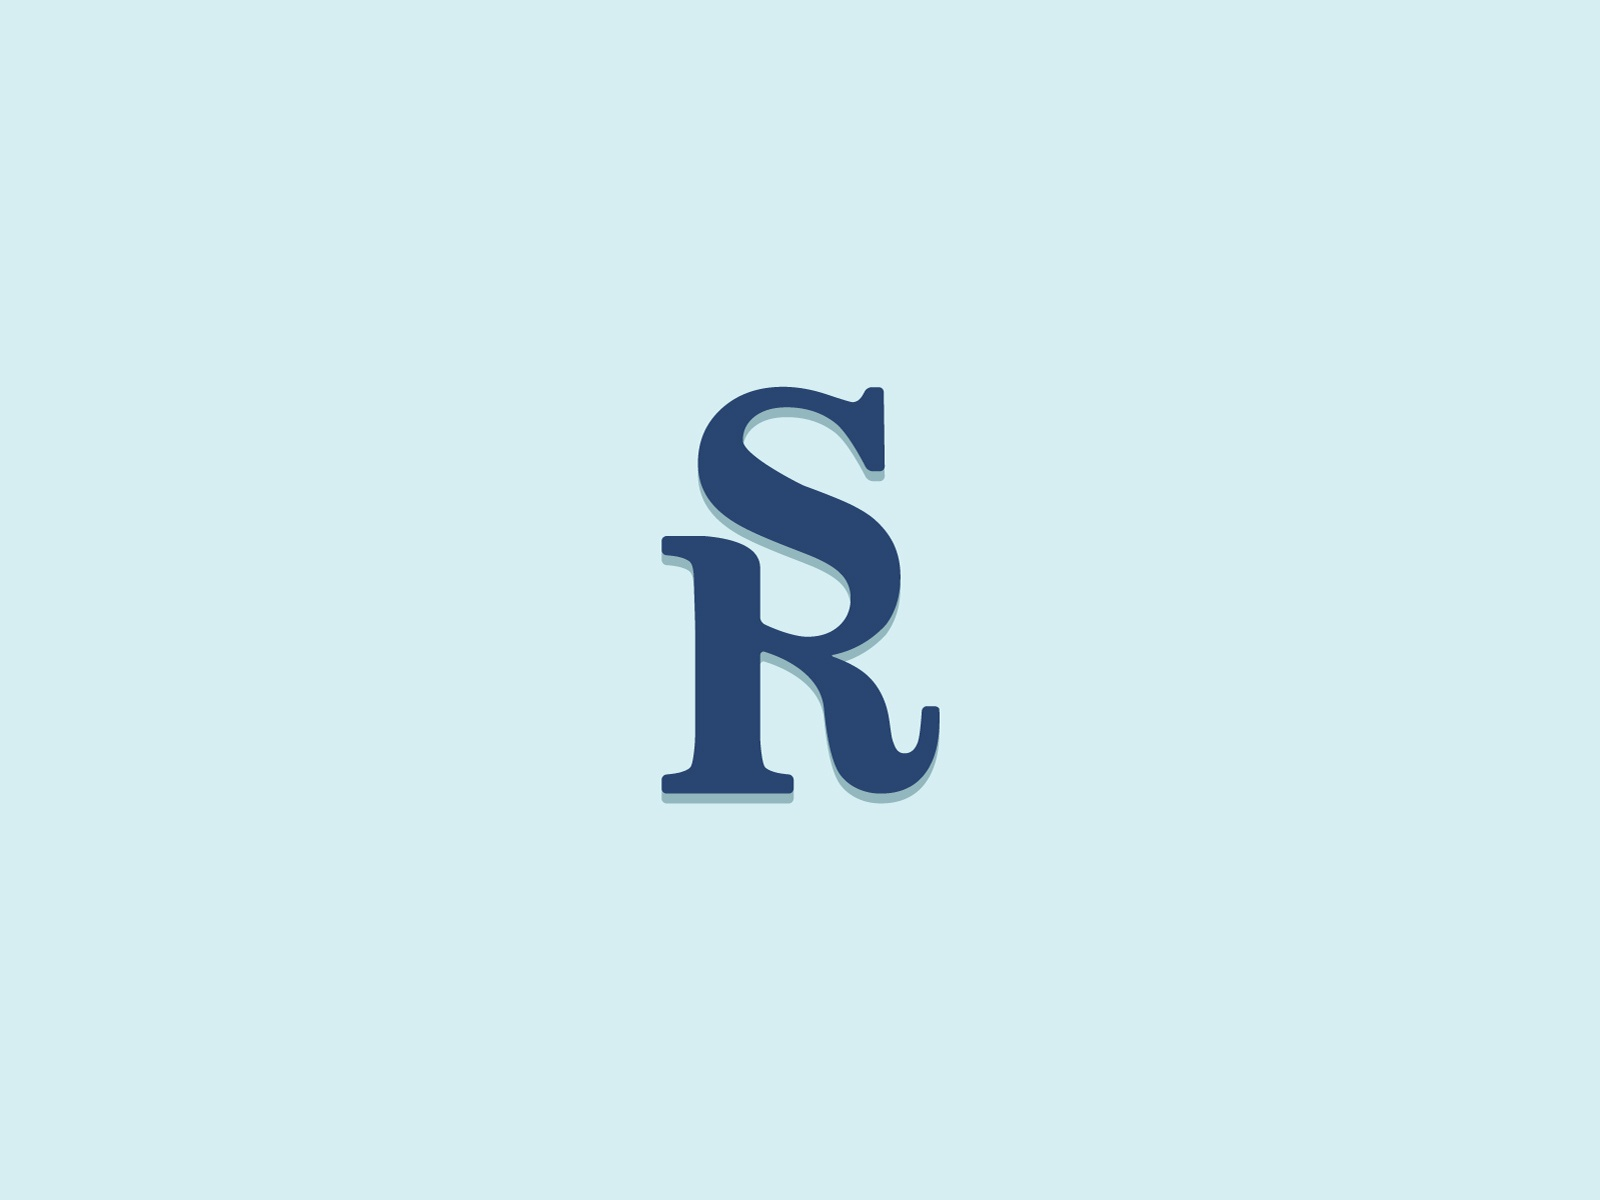 Sr Monogram By Billy Metcalfe On Dribbble